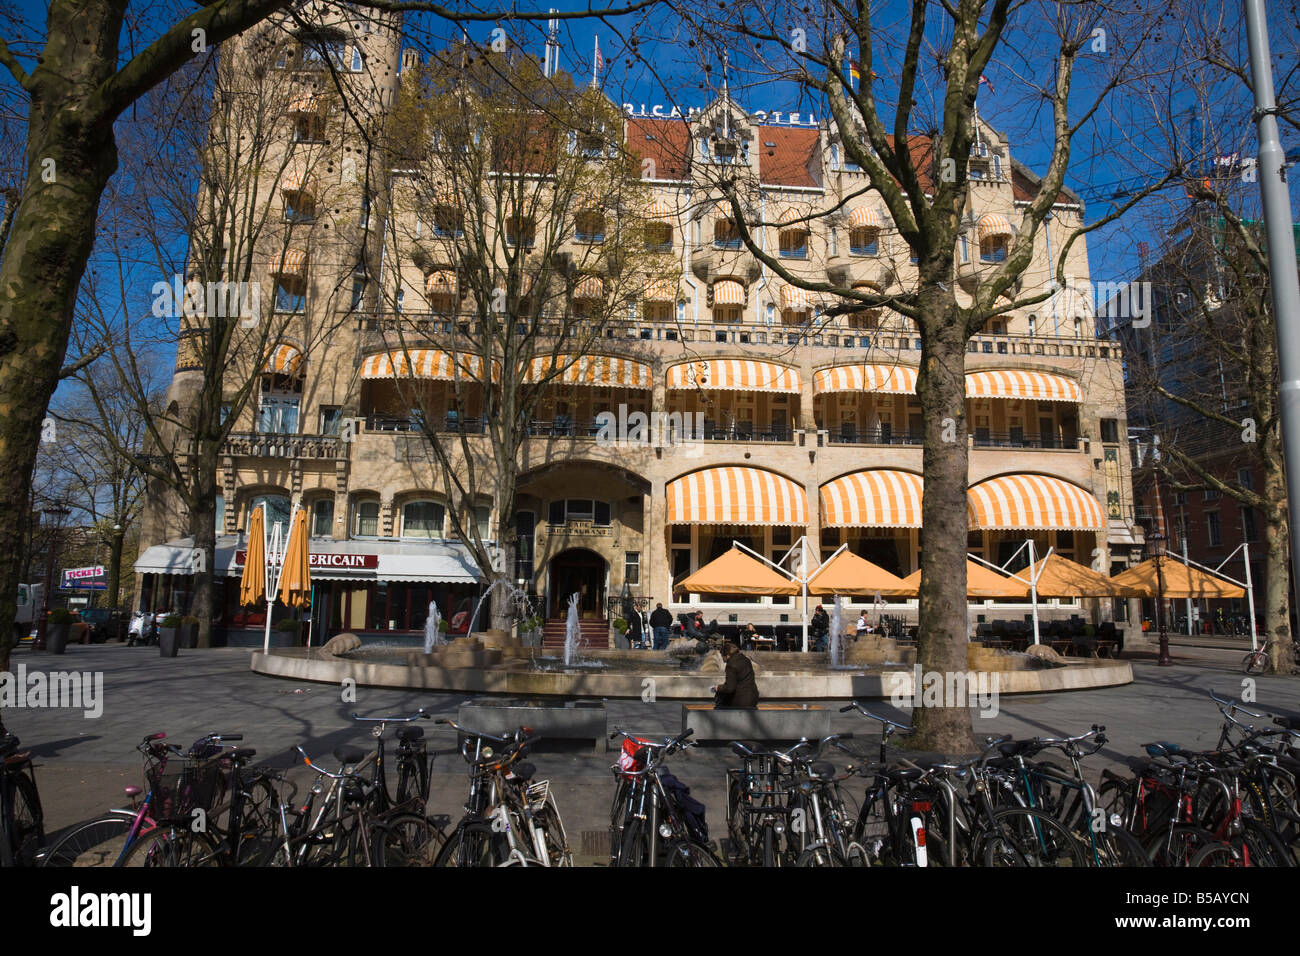 The American Hotel, a famous Art Nouveau style building in Stock